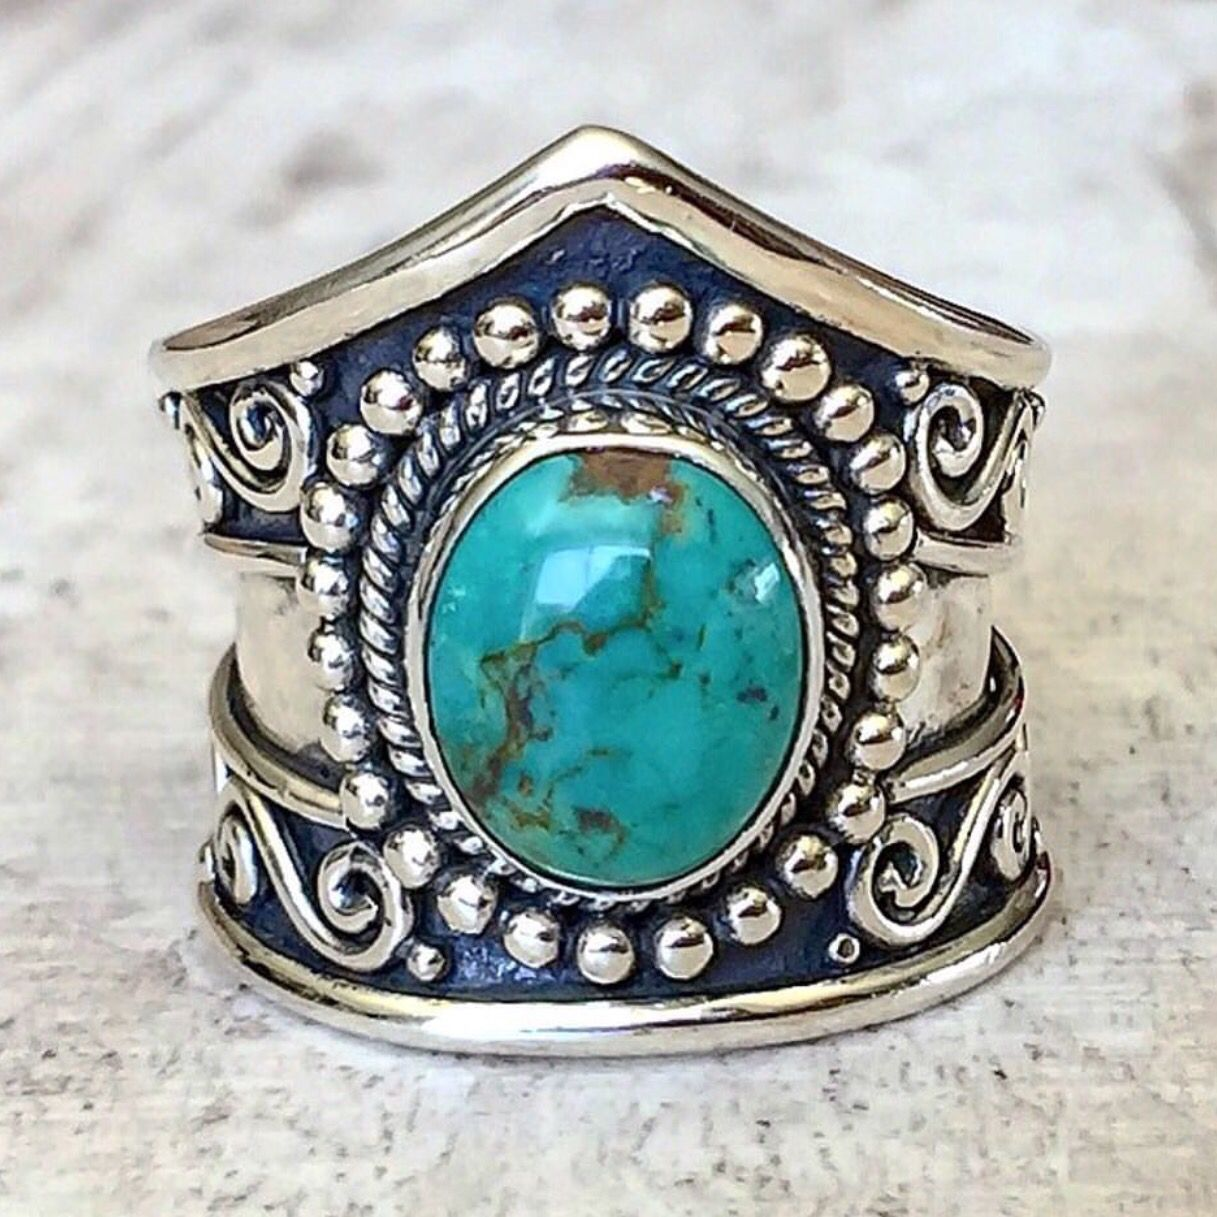 T U R Q U O I S E || Tribal Turquoise Ring || This stunner is available in our…